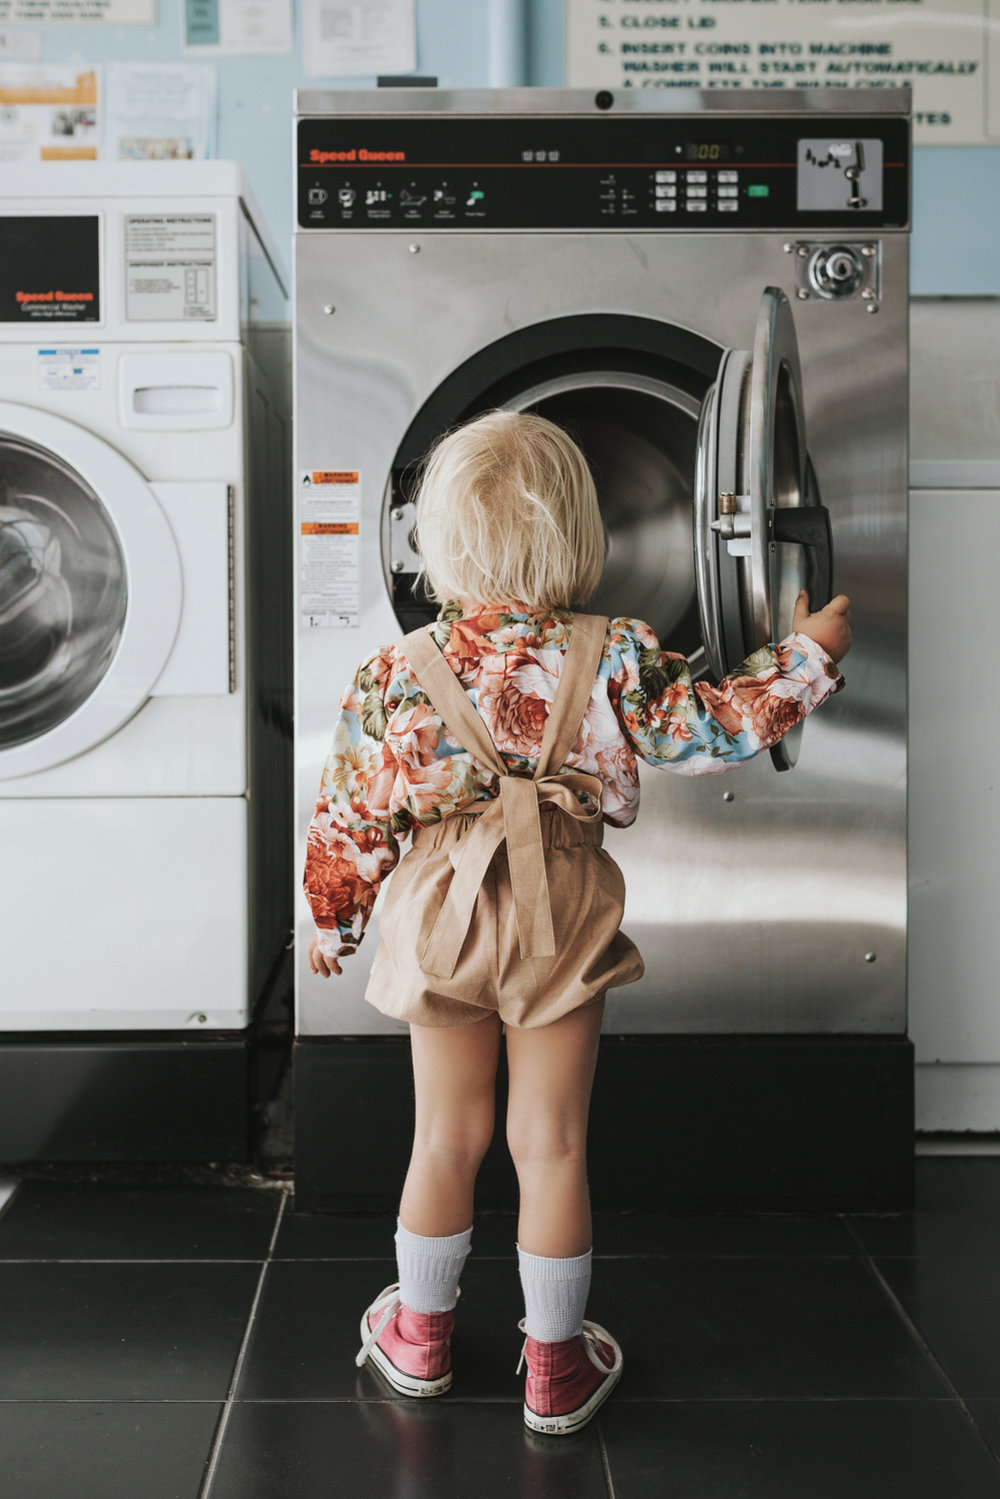 Young girl with bed hair looks into washing machine.